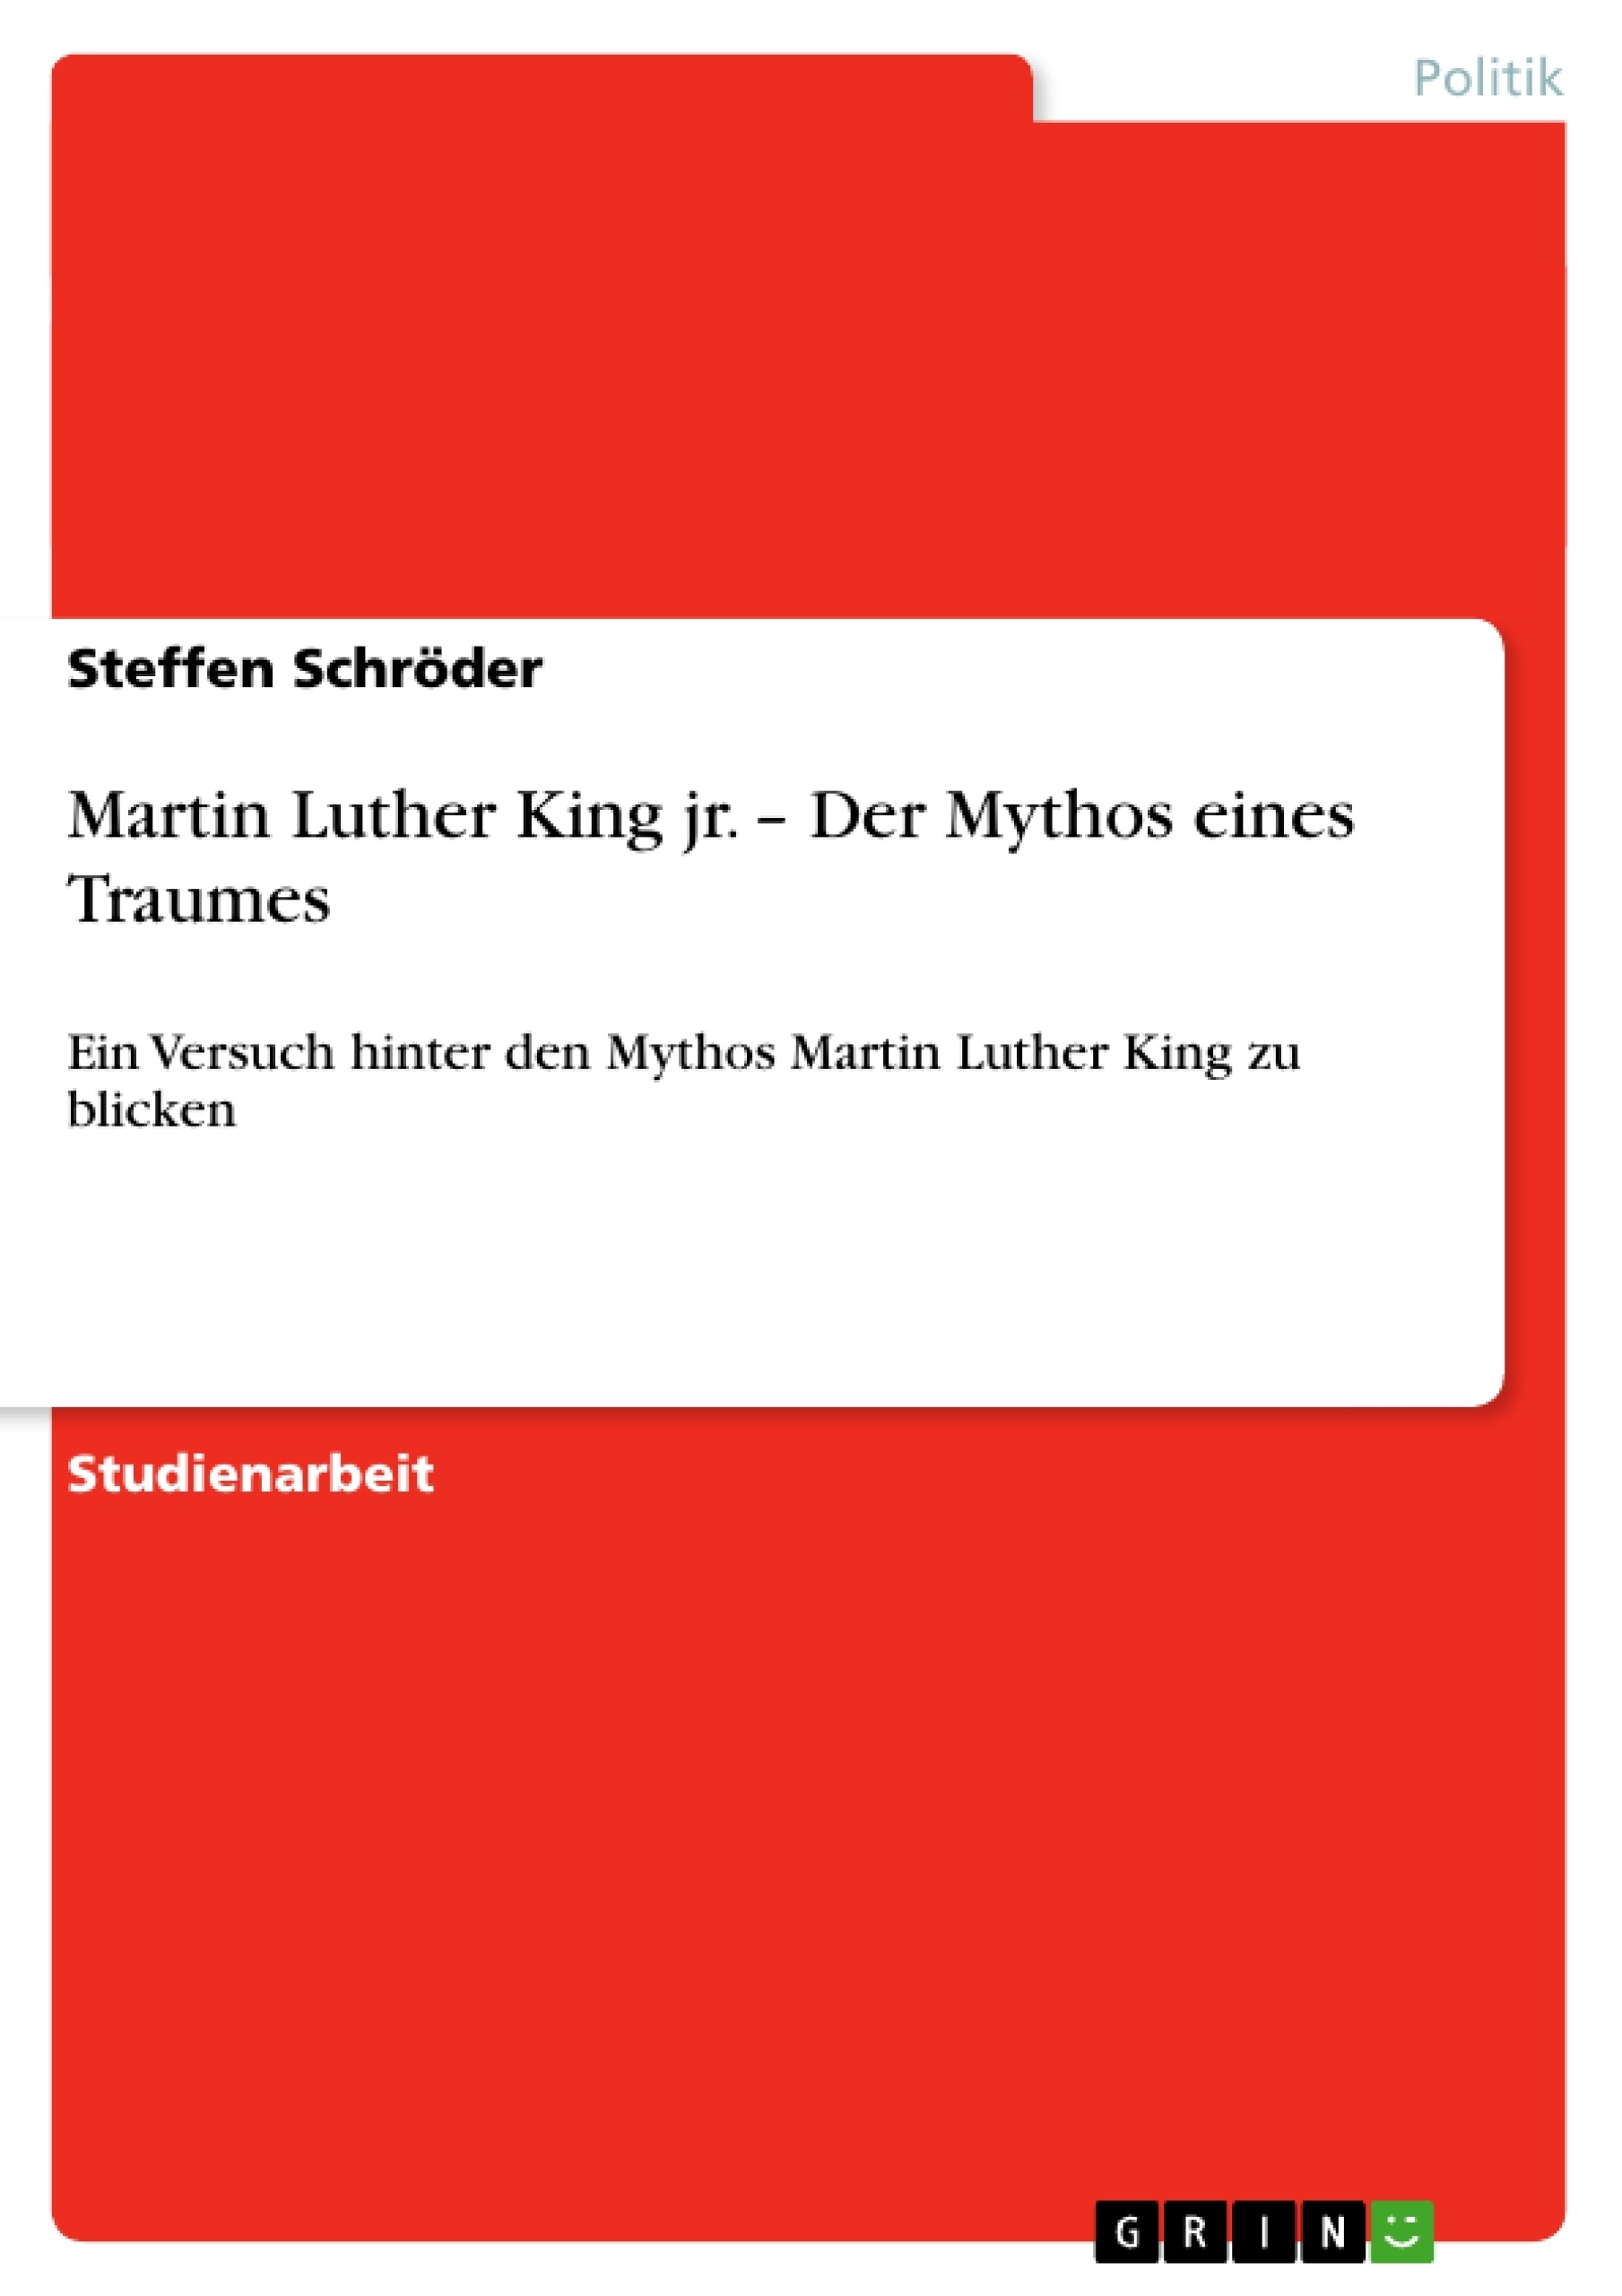 Titel: Martin Luther King jr. – Der Mythos eines Traumes